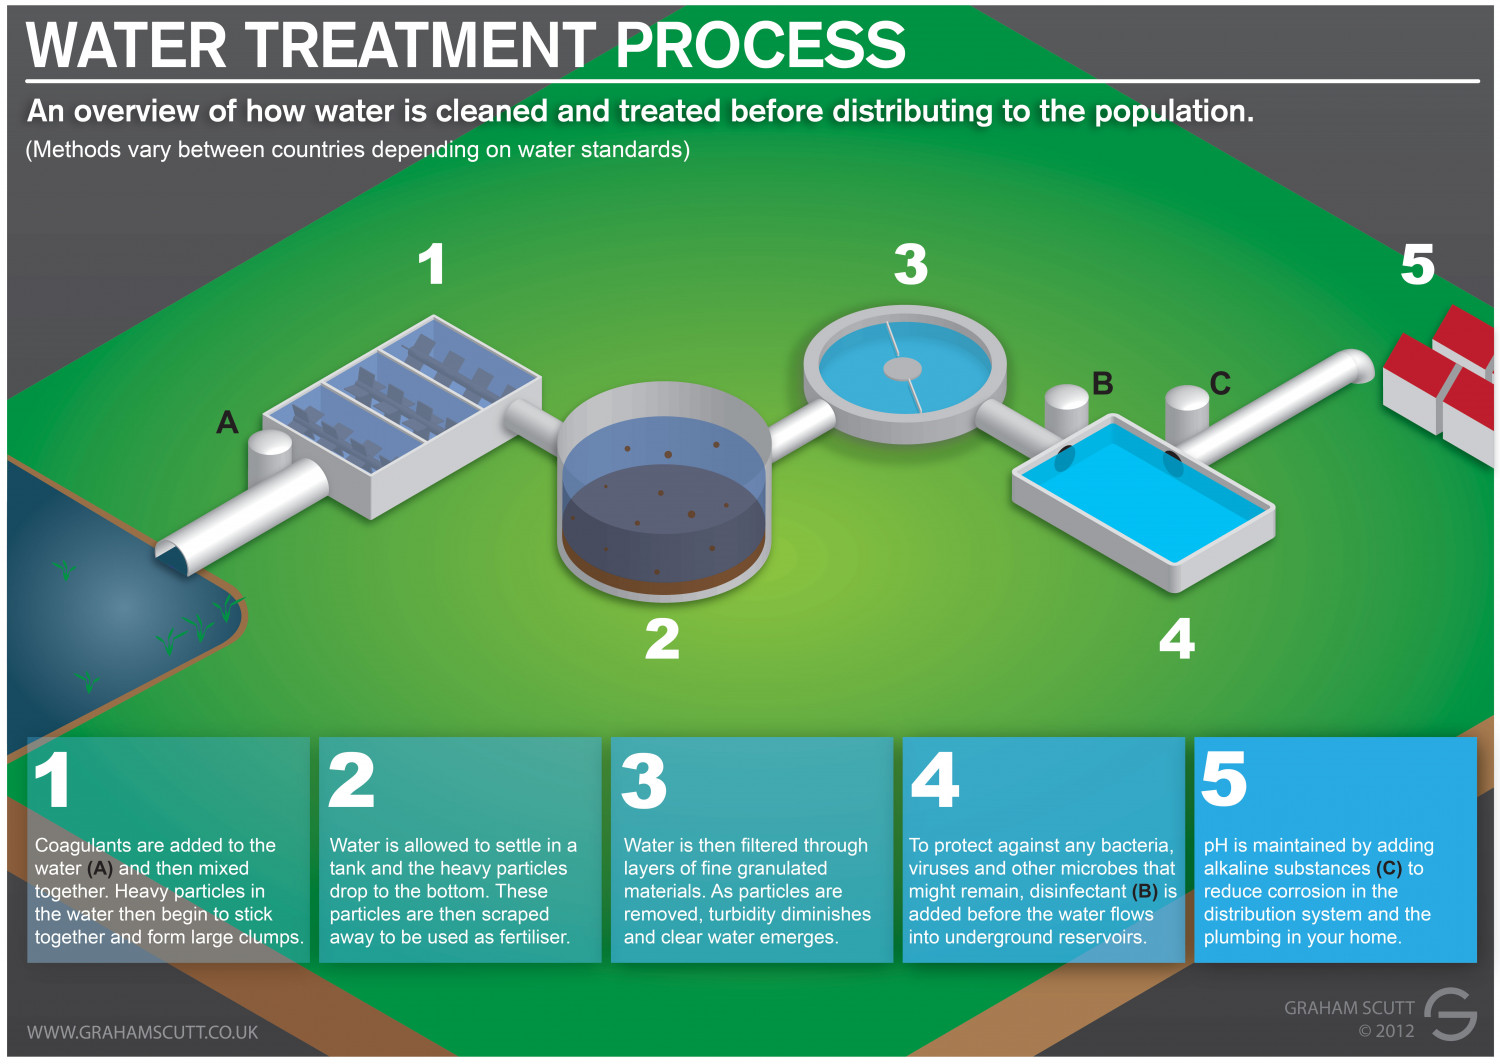 Water Treatment Process | Visual.ly